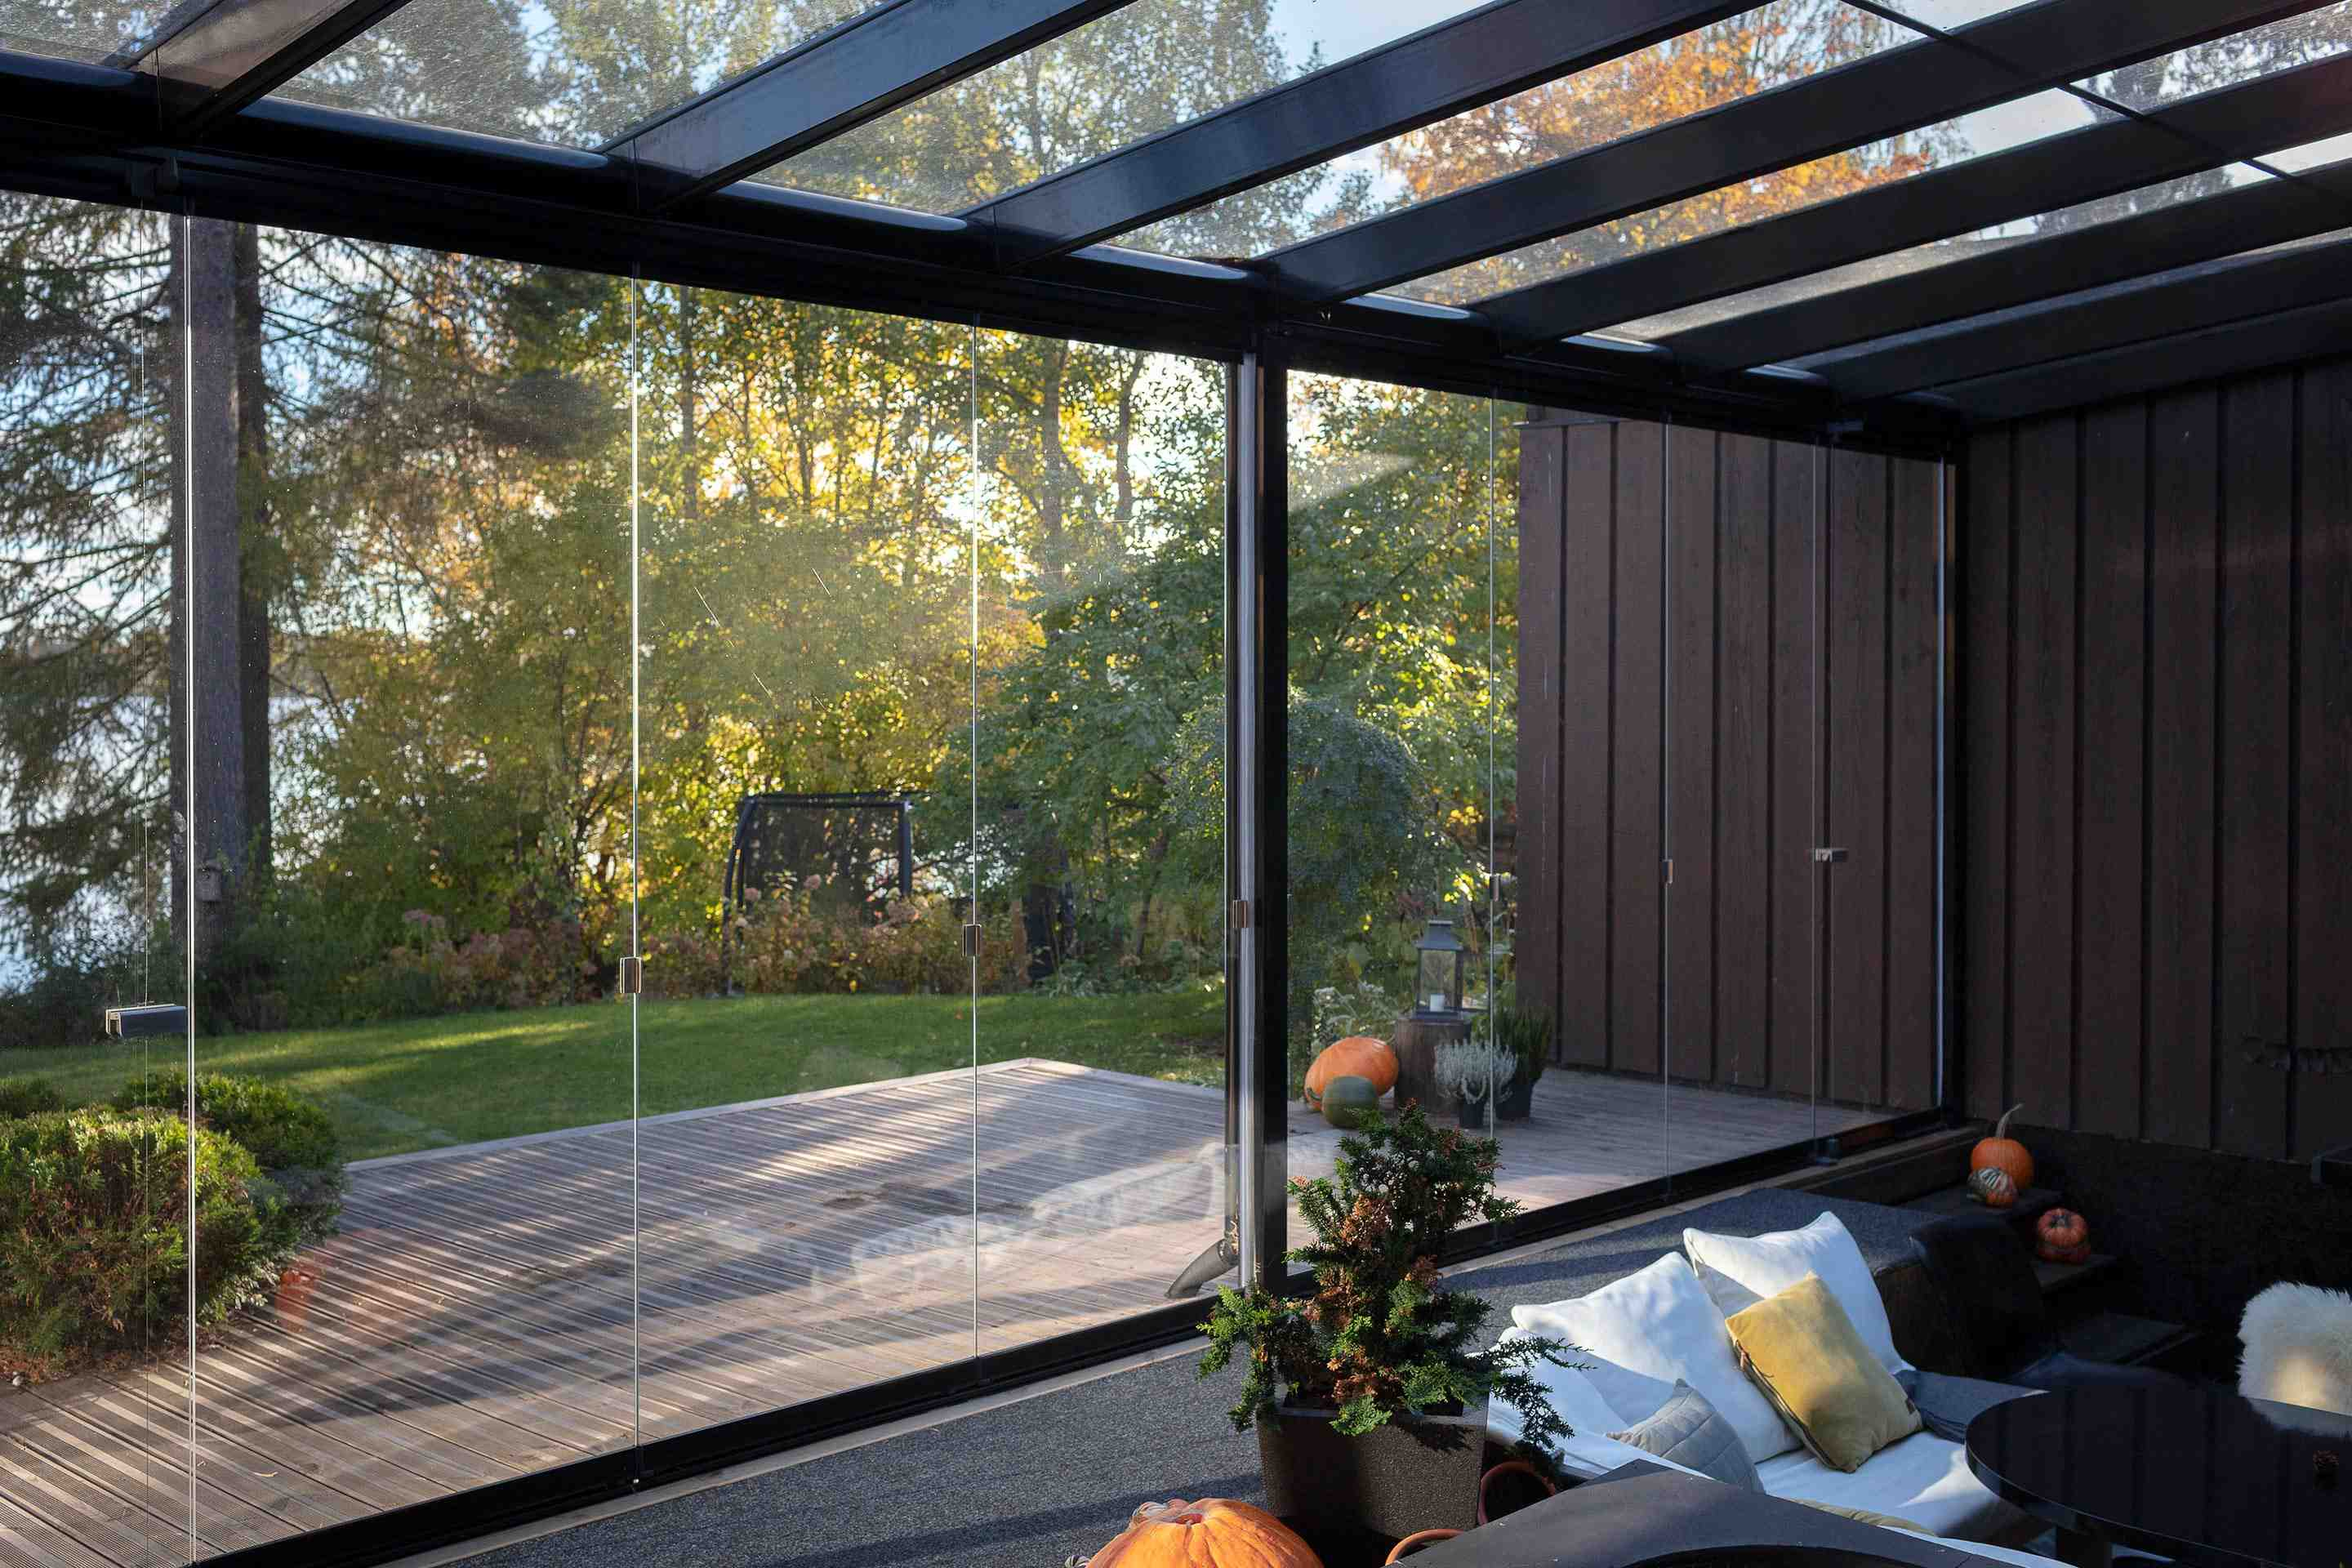 Sunroom in Canada, Lumon Canada, Sunroom in Toronto, Sunroom, Sunroom in Hamilton, Sunroom in Vancouver